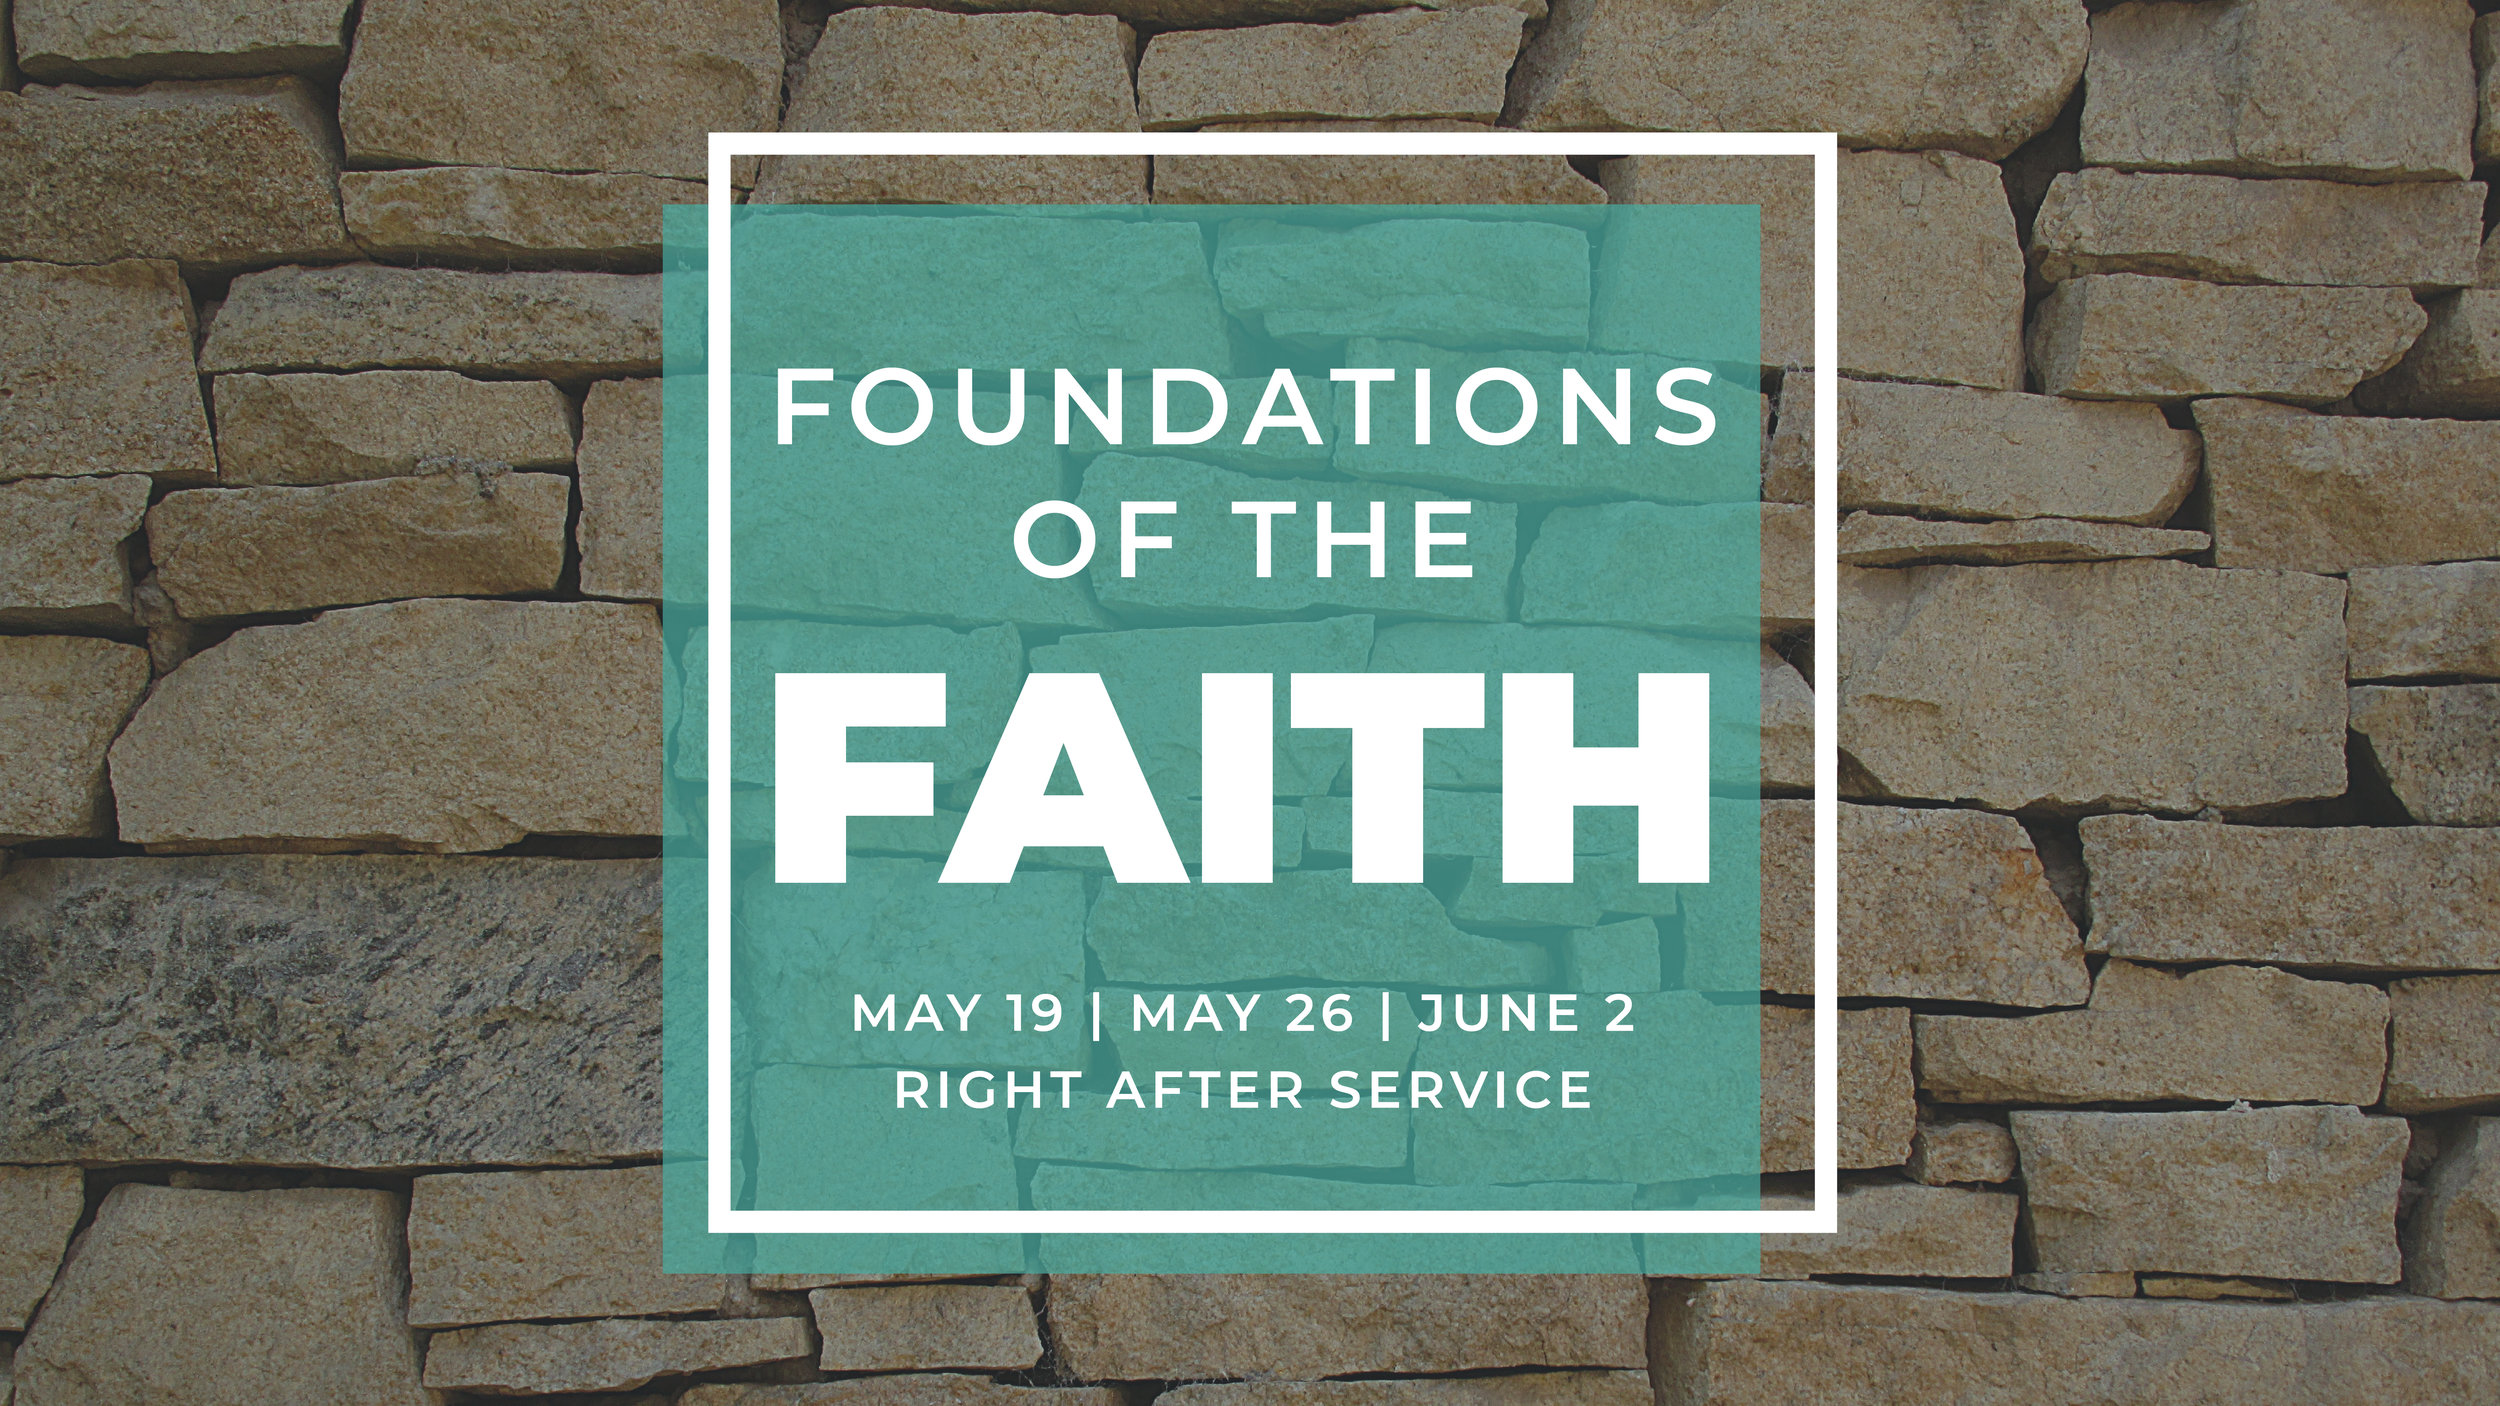 Foundations of the Faith Slide.jpg